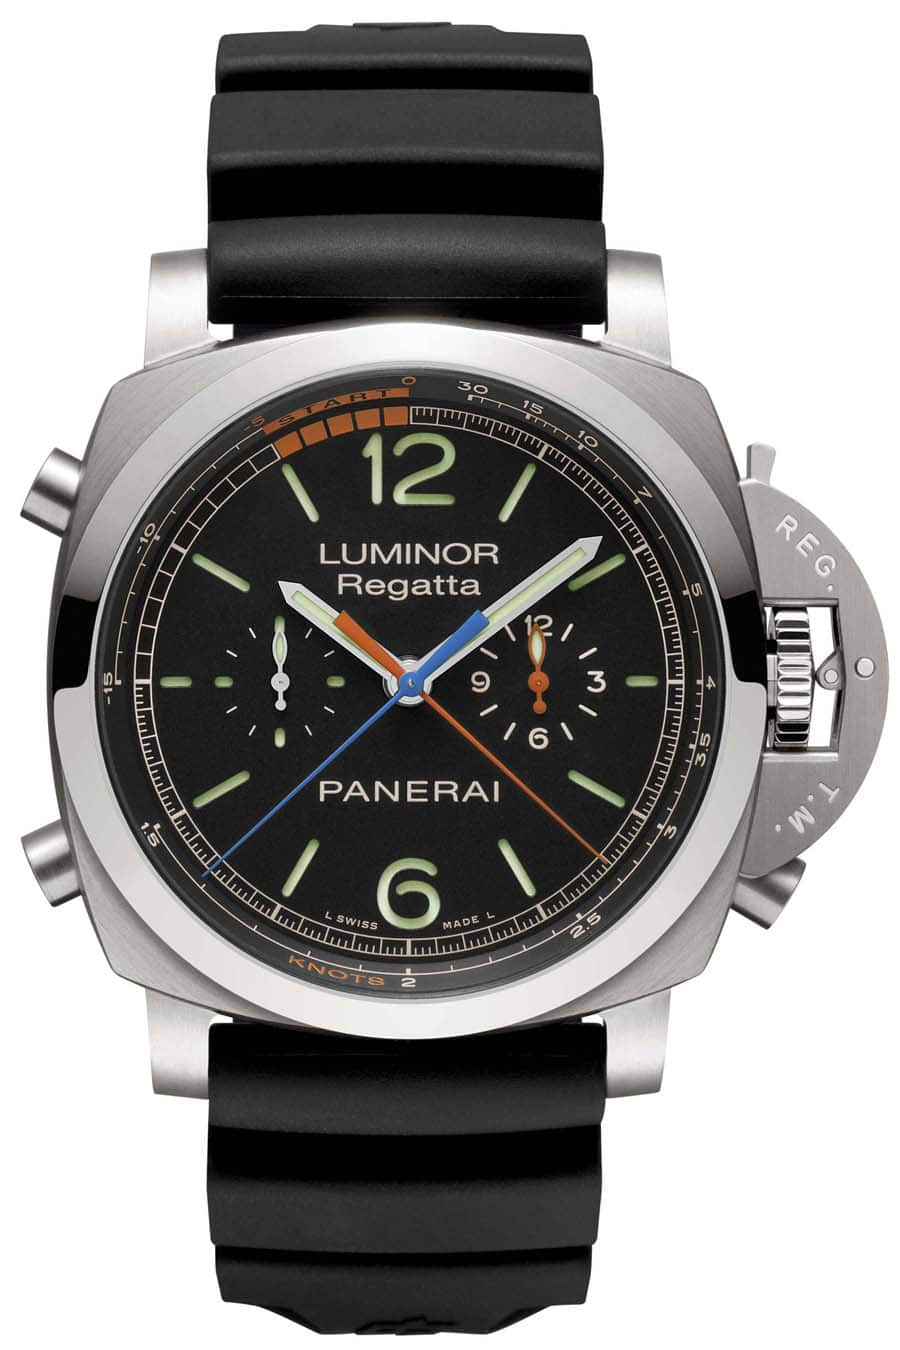 Panerai: Luminor 1950 Regatta Chrono Flyback